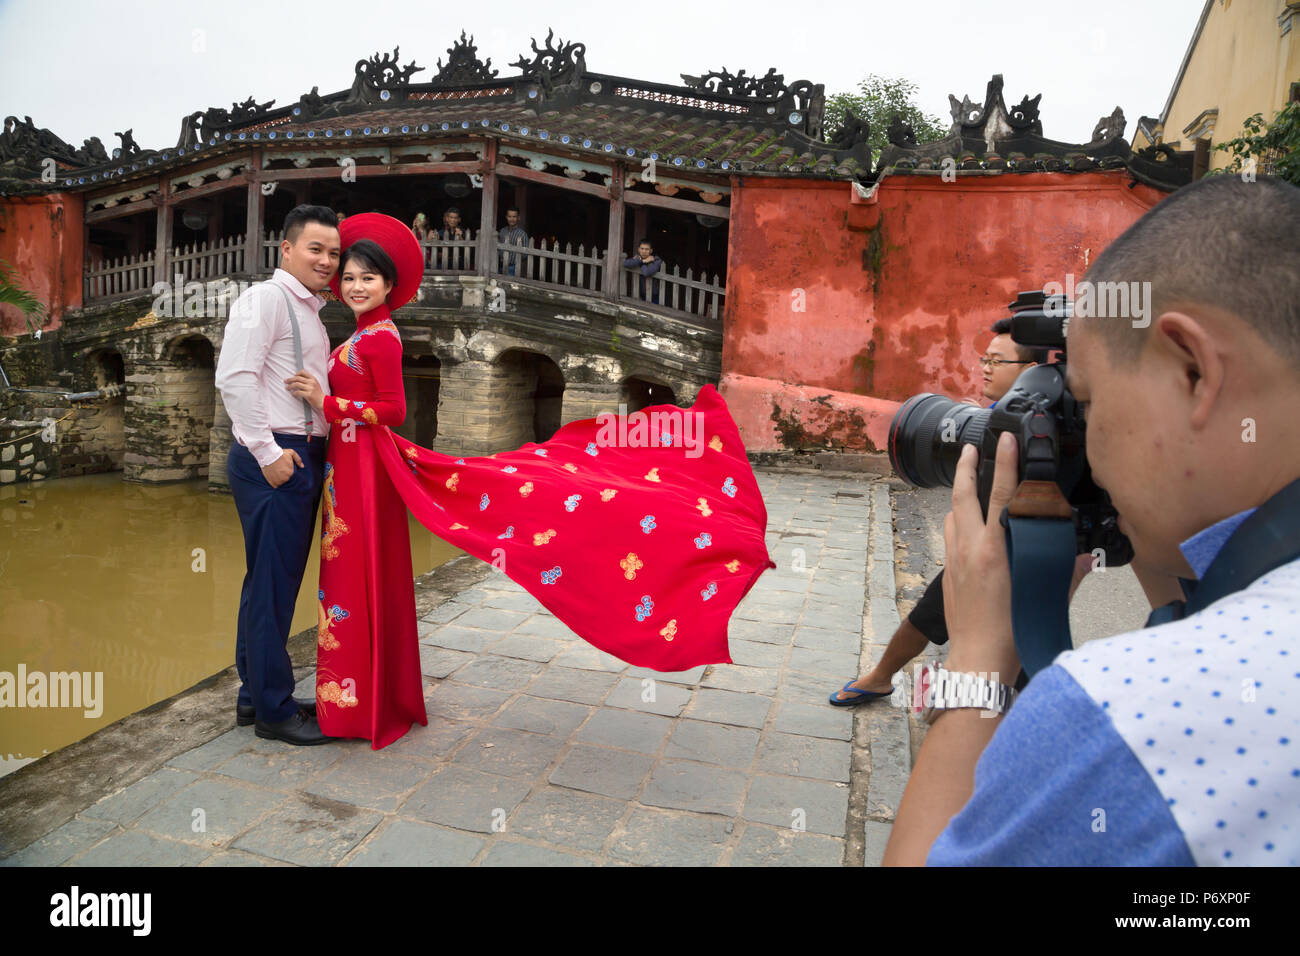 Photo session in front of the Japanese covered bridge, Hoi An , Vietnam - Stock Image